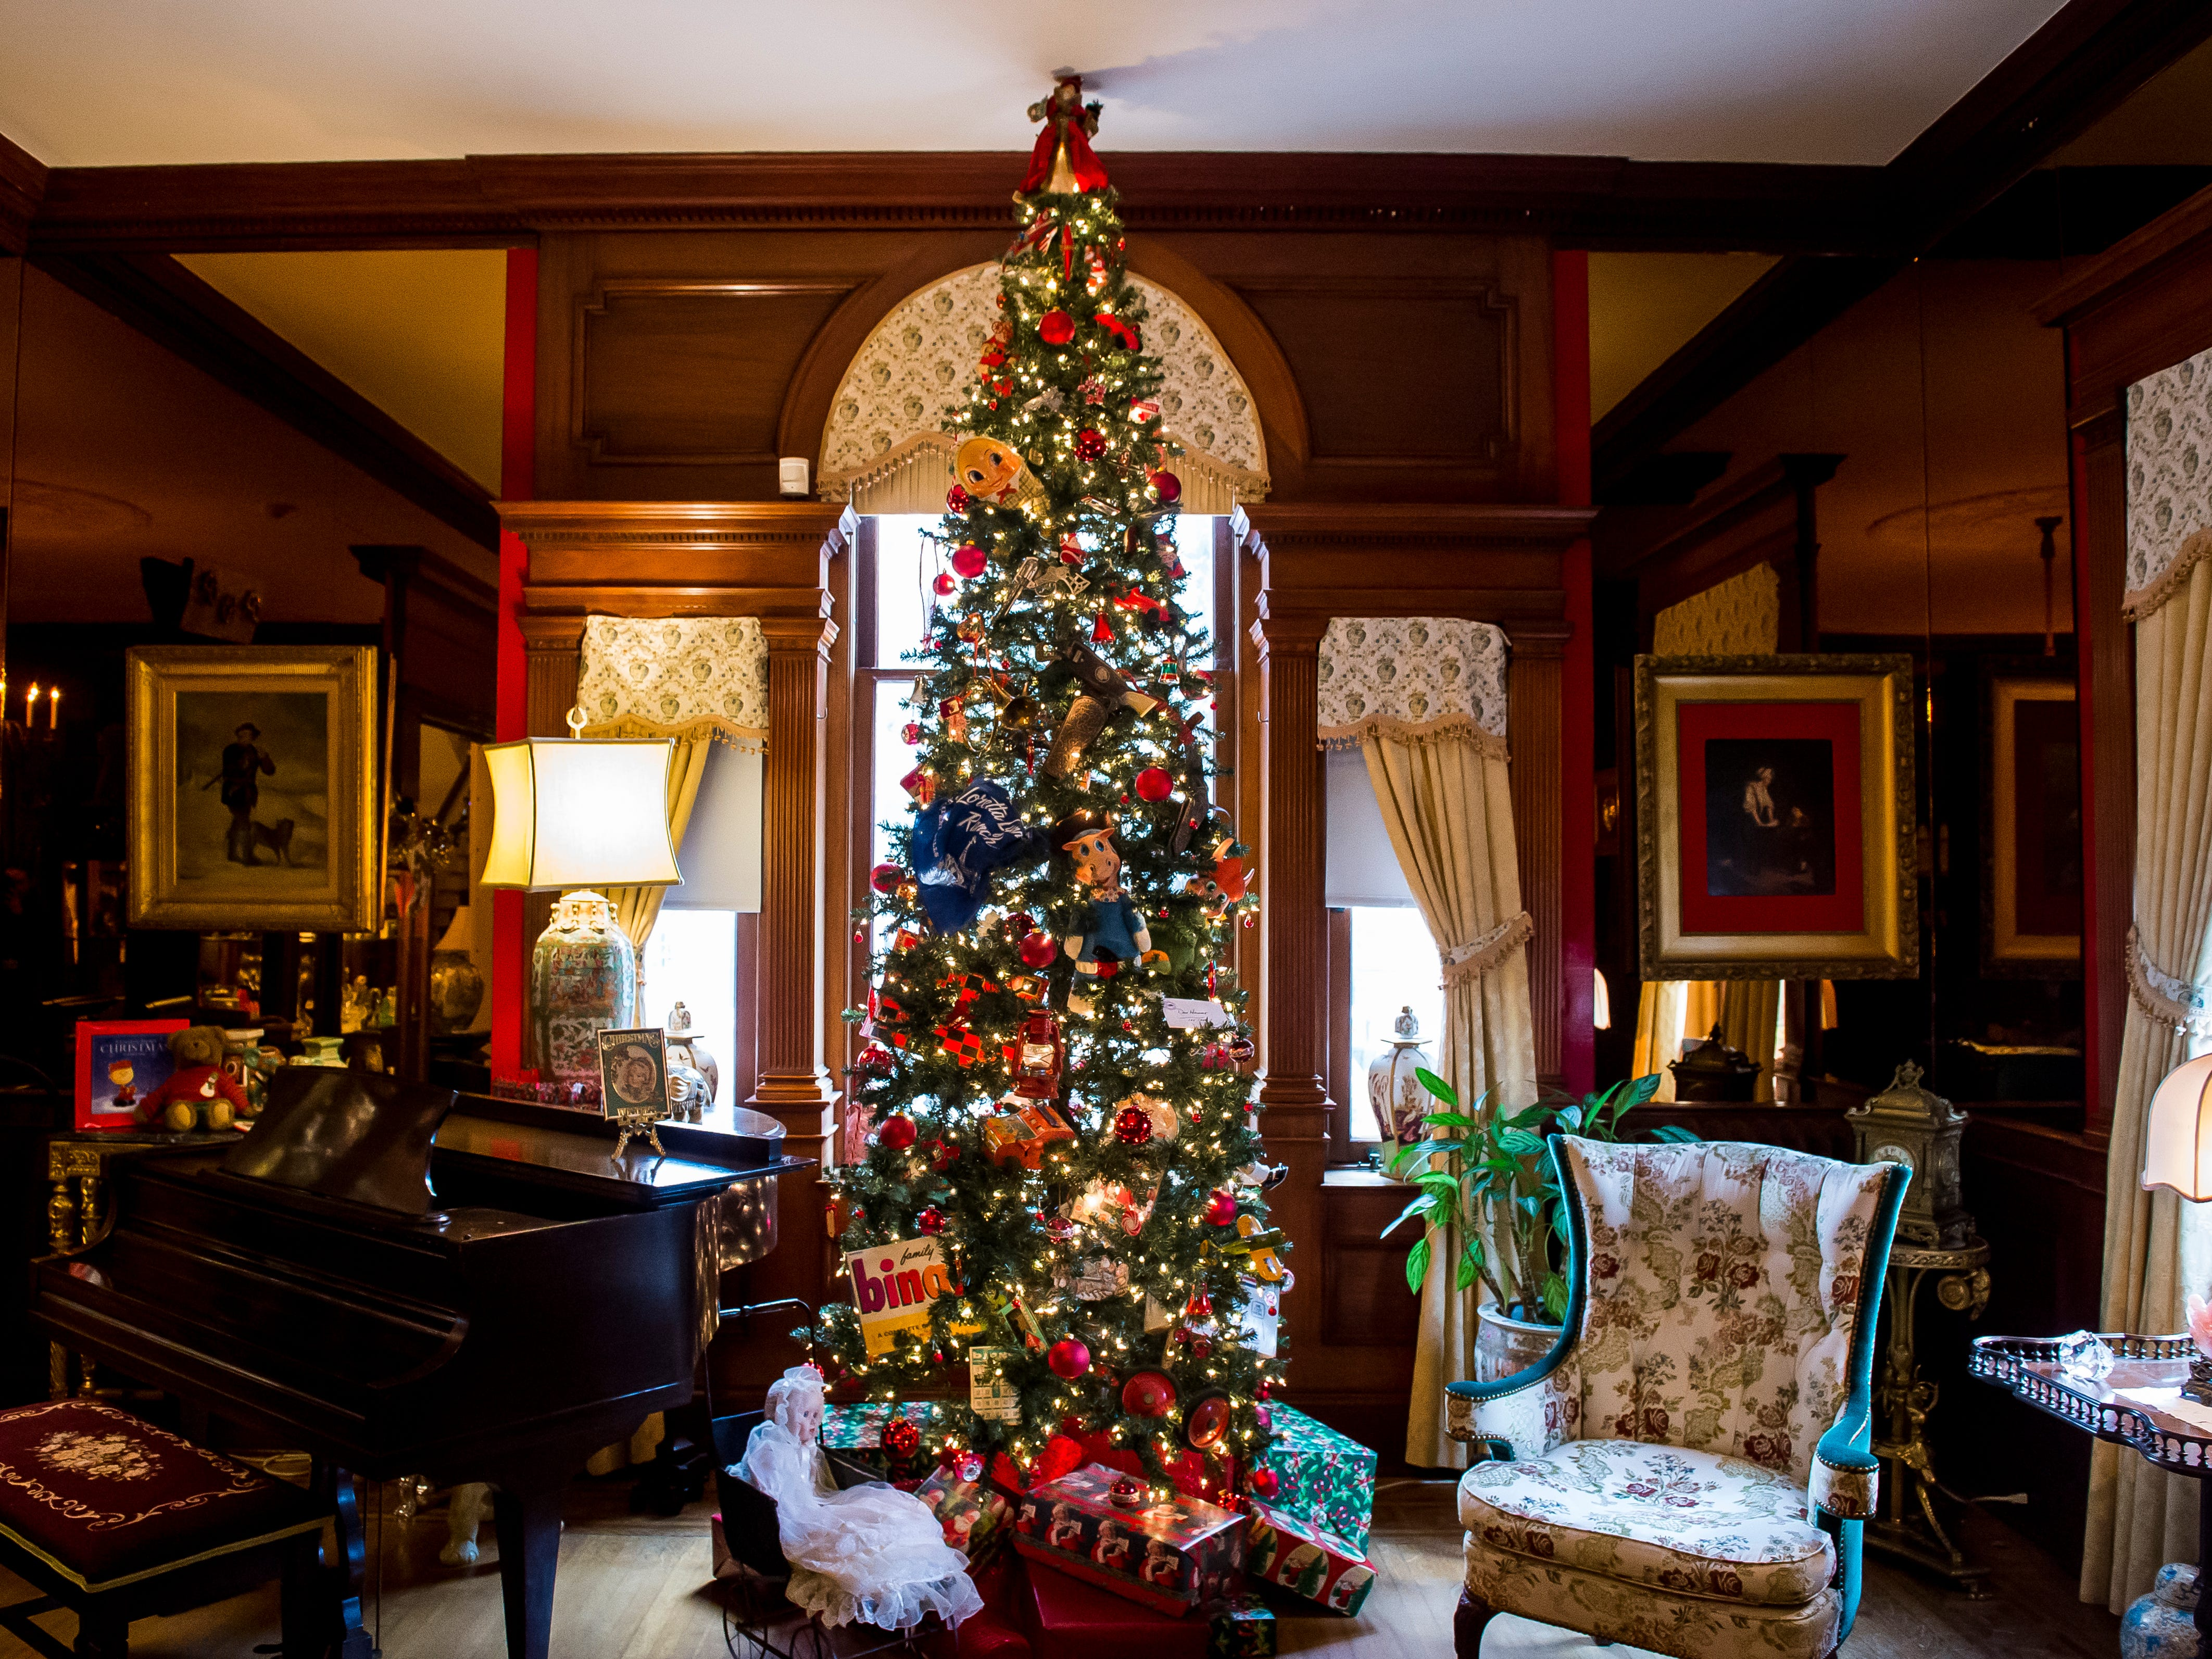 Over 40 decorated Christmas trees are on display at the Warehime-Myers Mansion in Hanover including this 12 foot tree that was decorated by Hanover Area Historical Society board member Don Hamme.